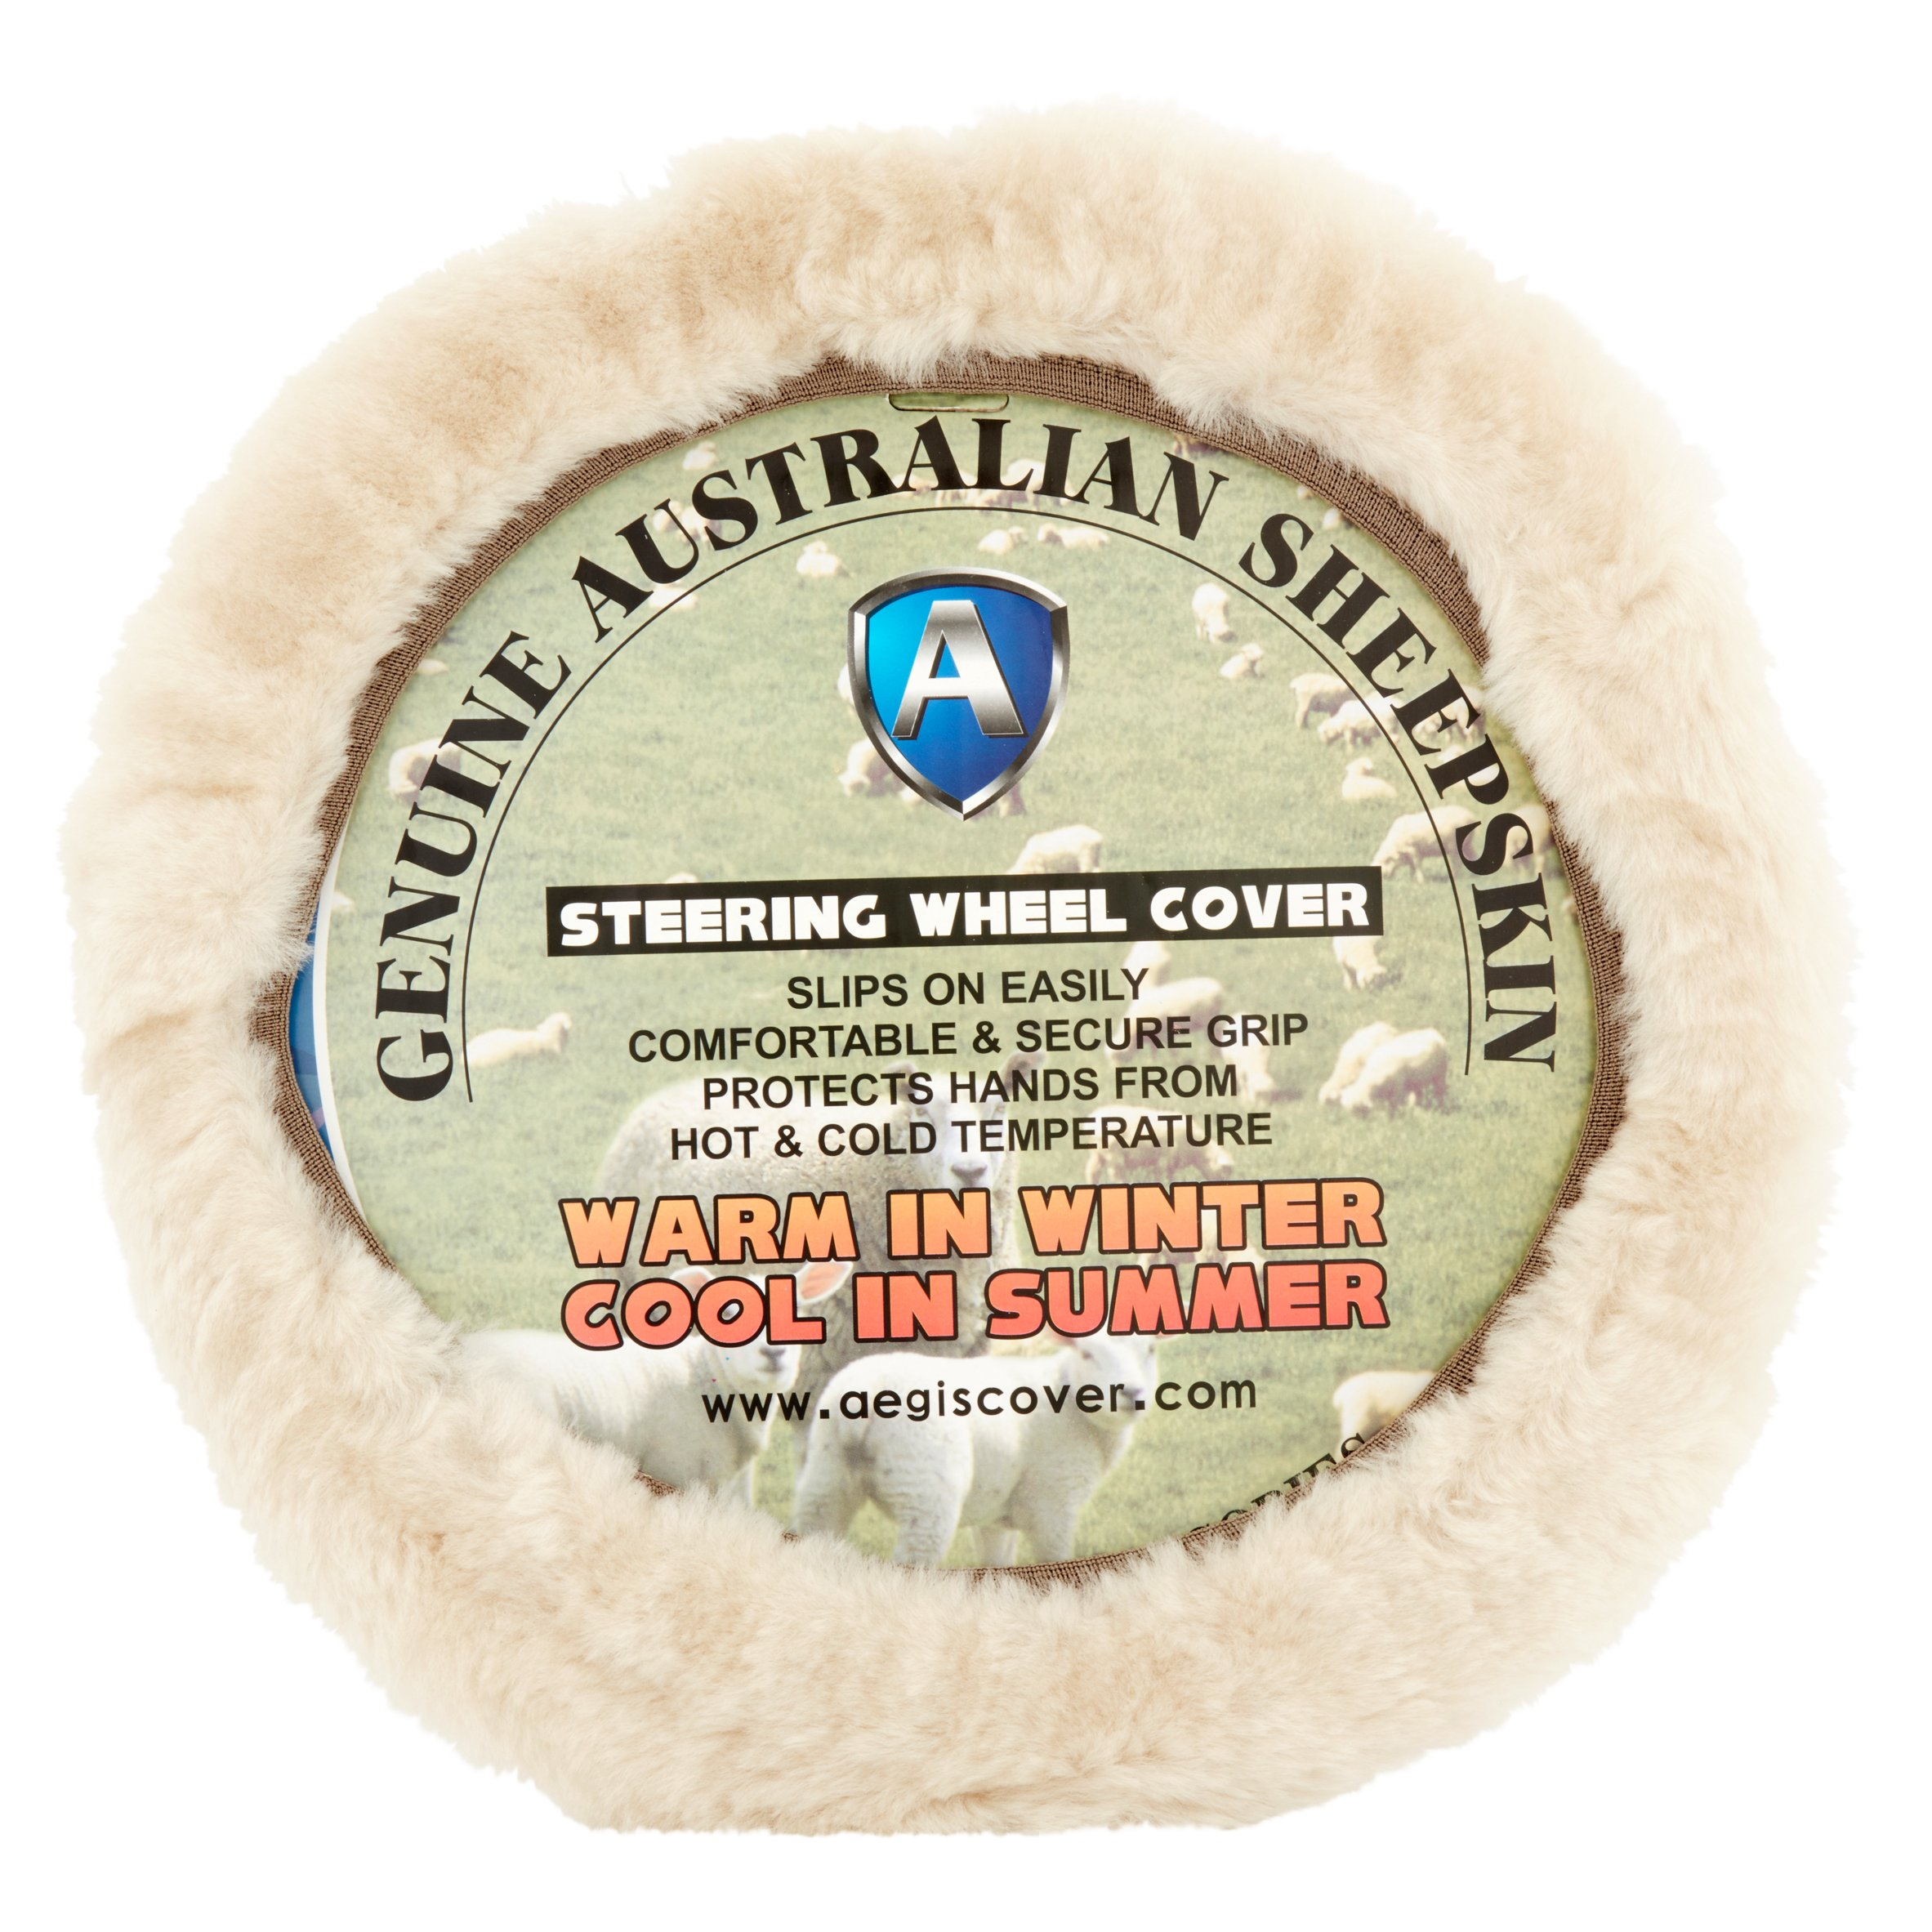 Aegis Cover Genuine Australian Sheepskin Steering Wheel Cover